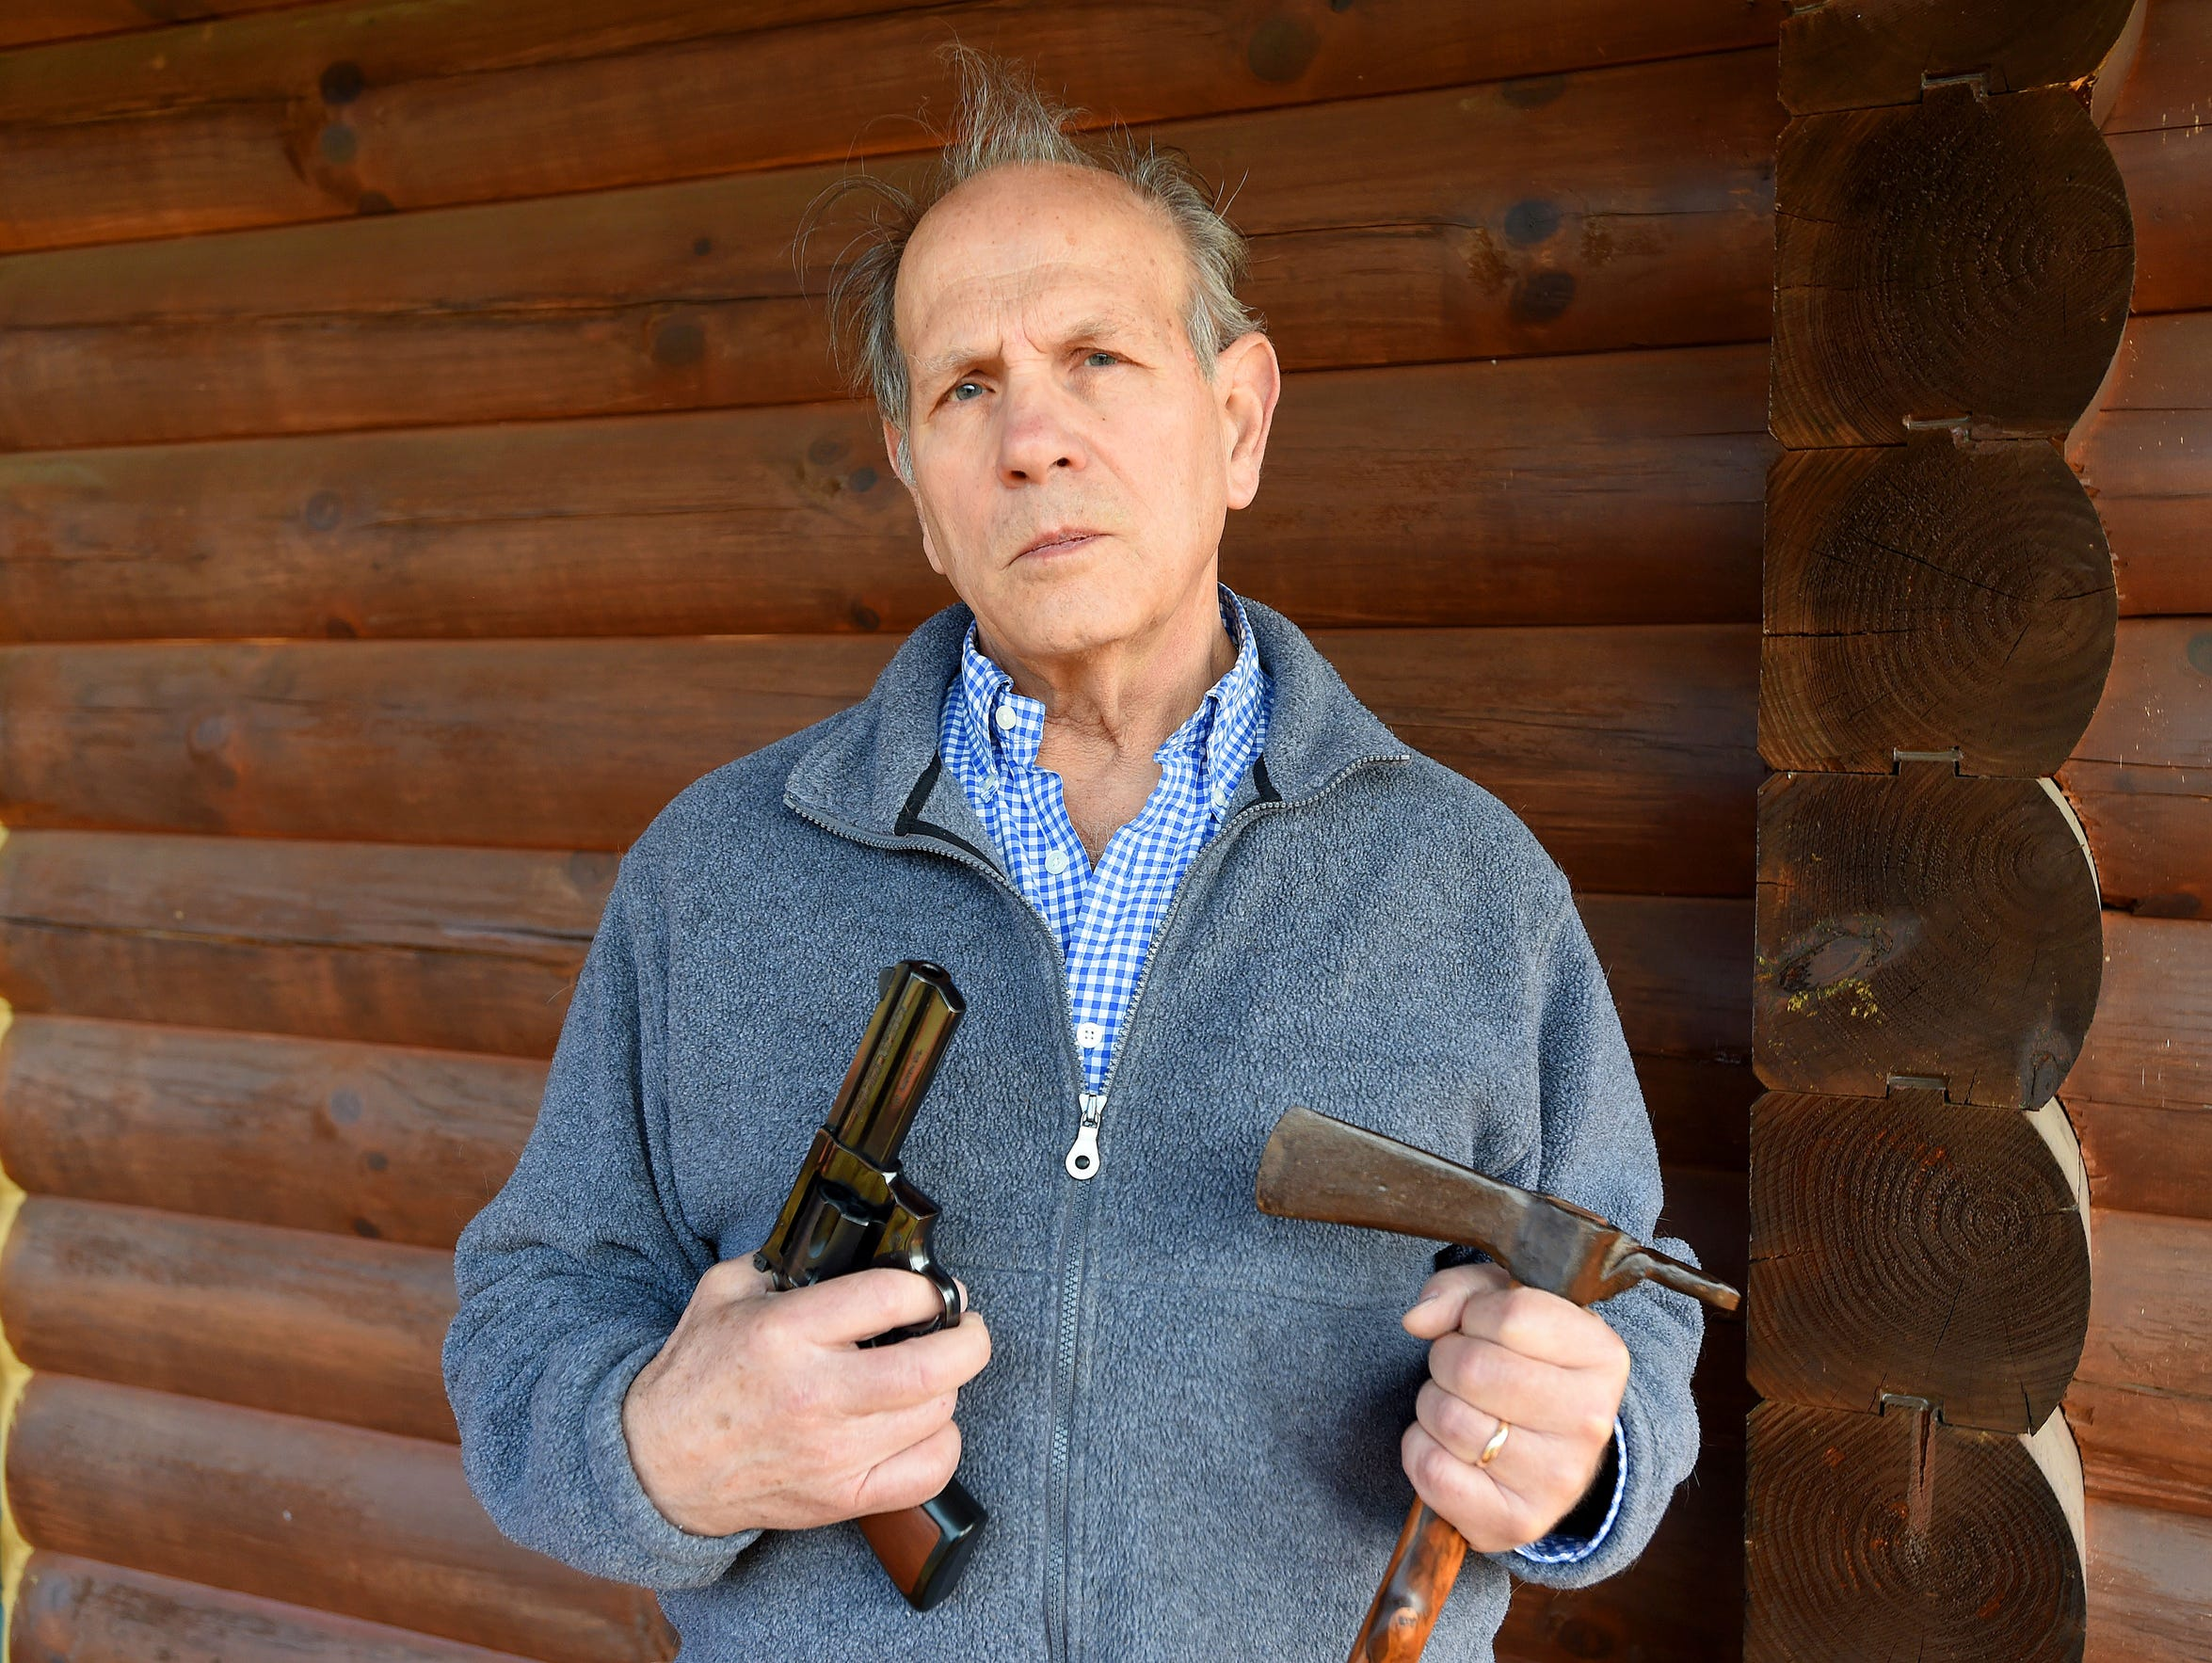 Jim Lambiase appreciates the mechanics of firearms